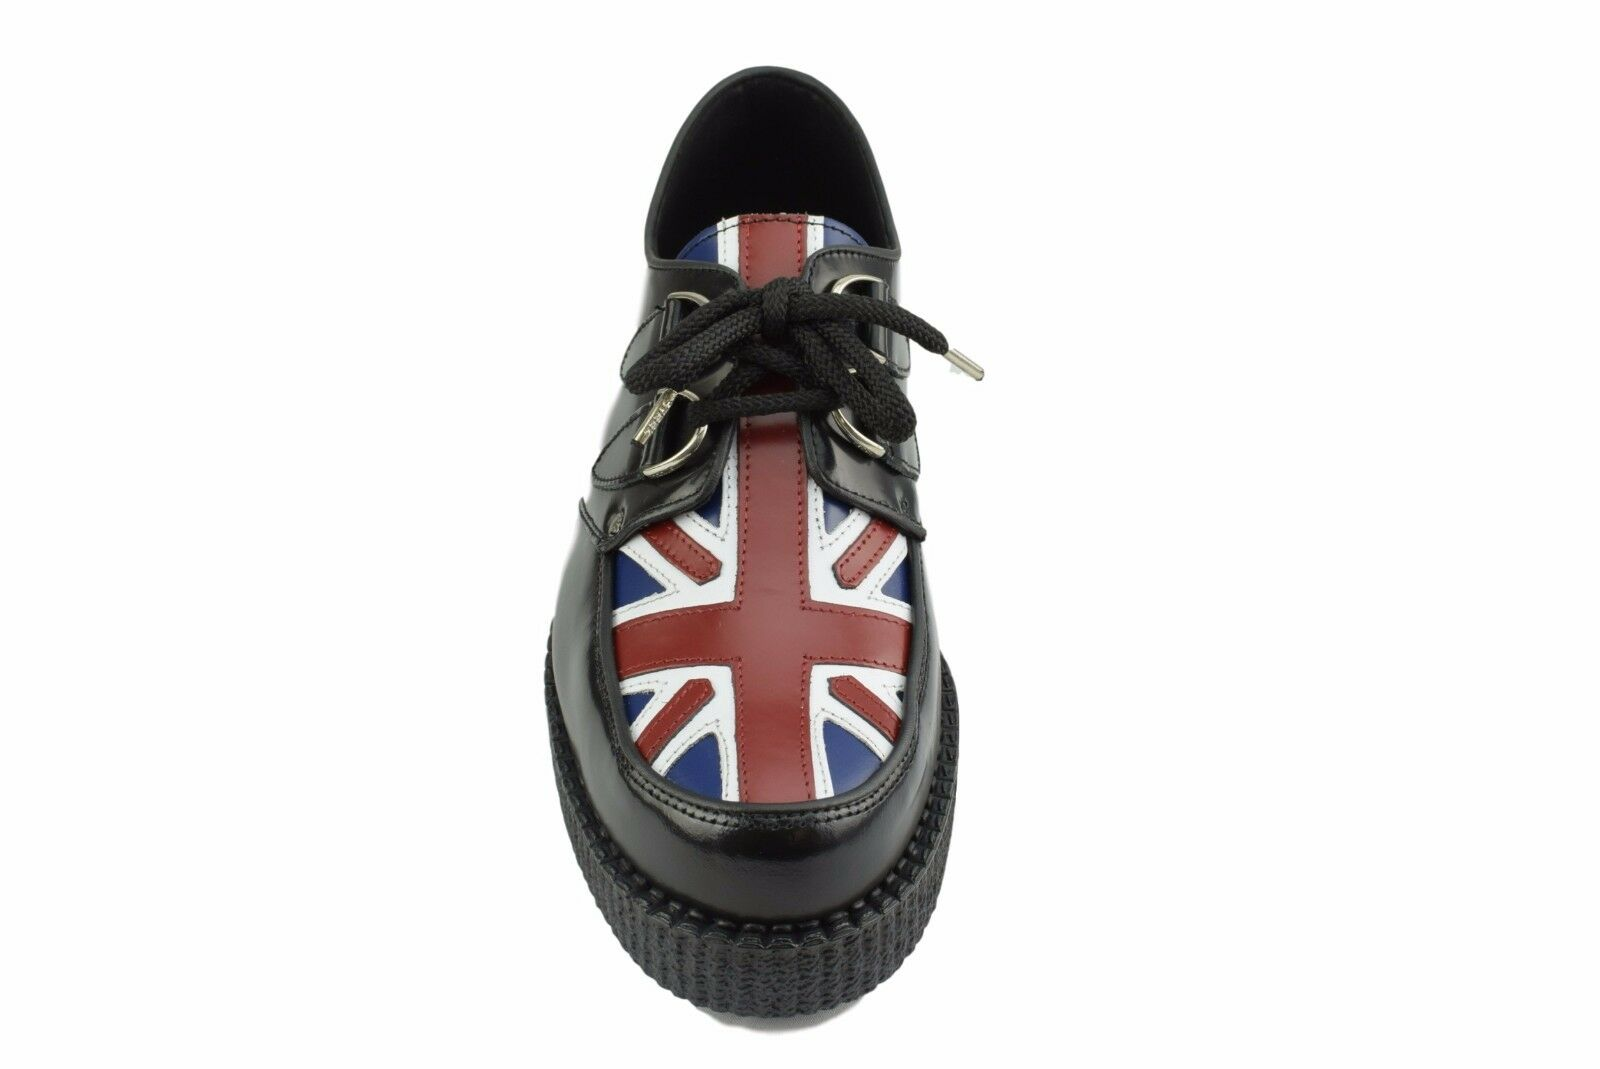 Steel Ground Schuhes schwarz Leder Union Jack Flag Creepers Low Sole D Ring